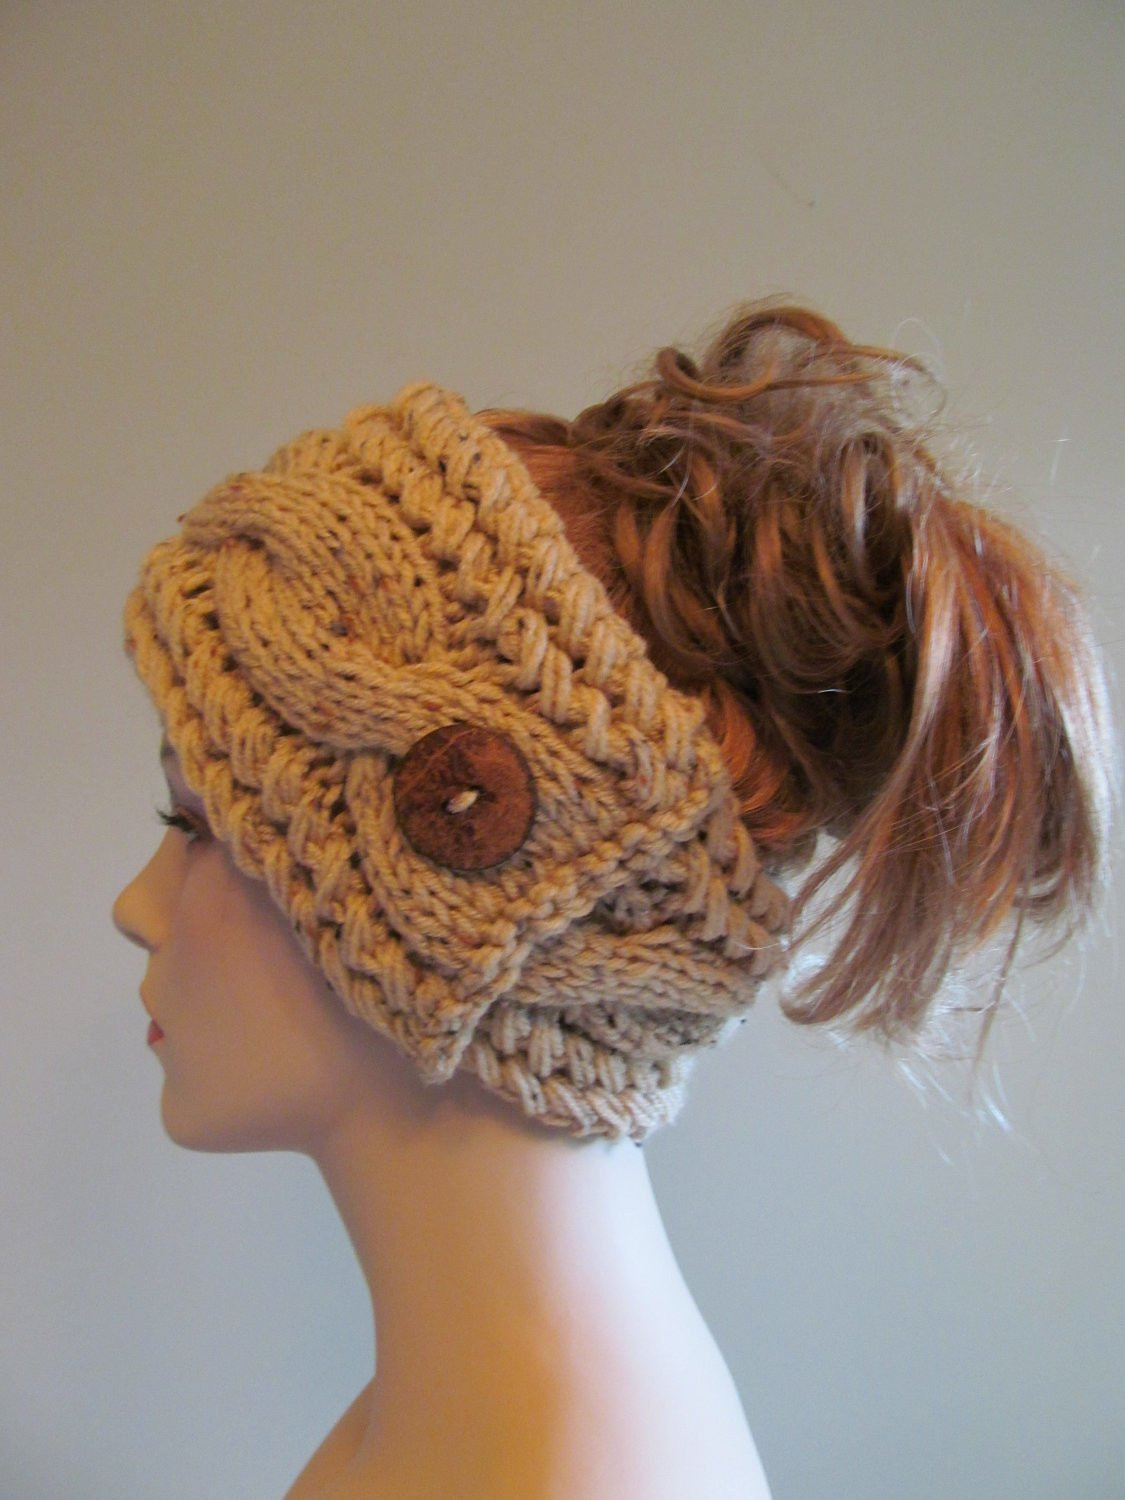 Lovely 301 Moved Permanently Braided Knit Headband Of Amazing 42 Pics Braided Knit Headband